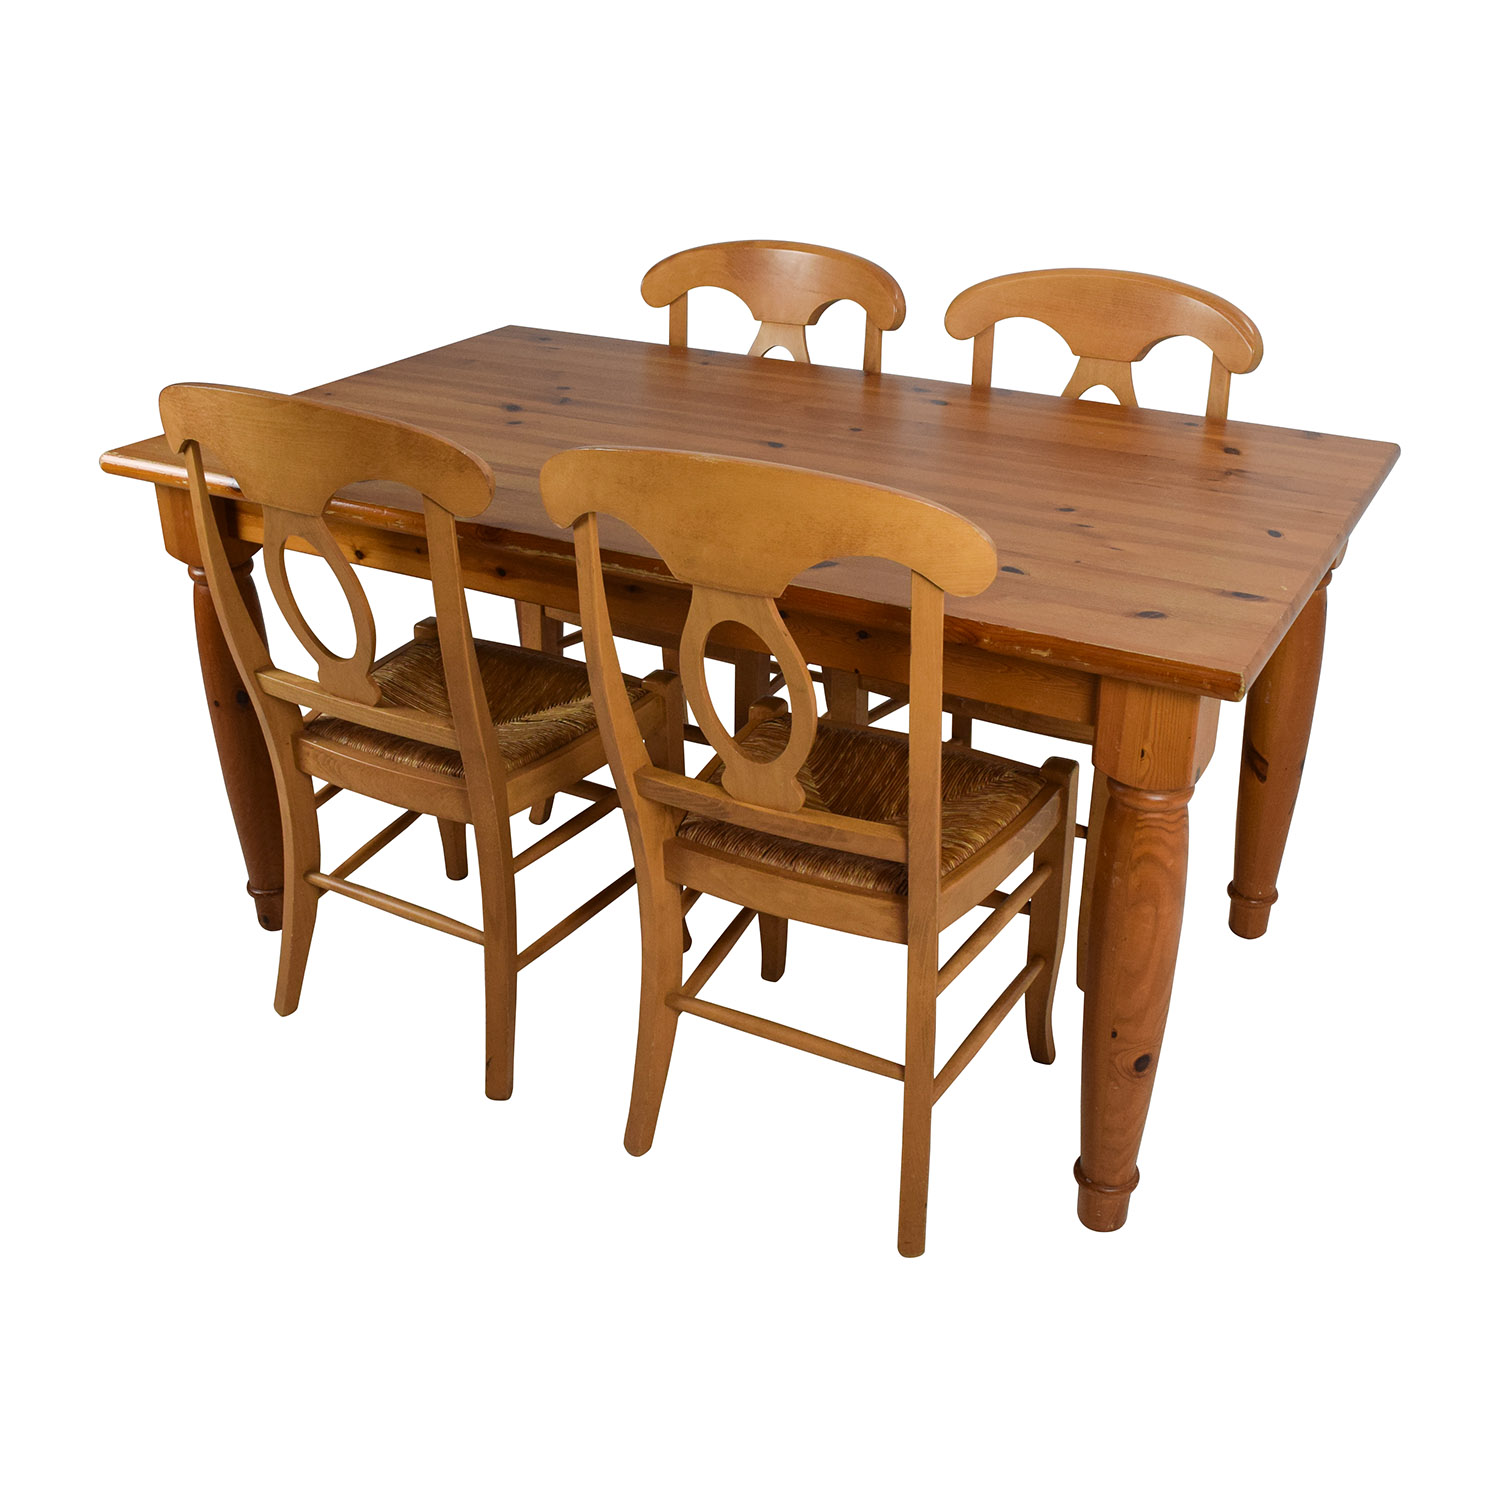 56% OFF - Bob's Discount Furniture Bob's Furniture Extendable Dining Set / Tables